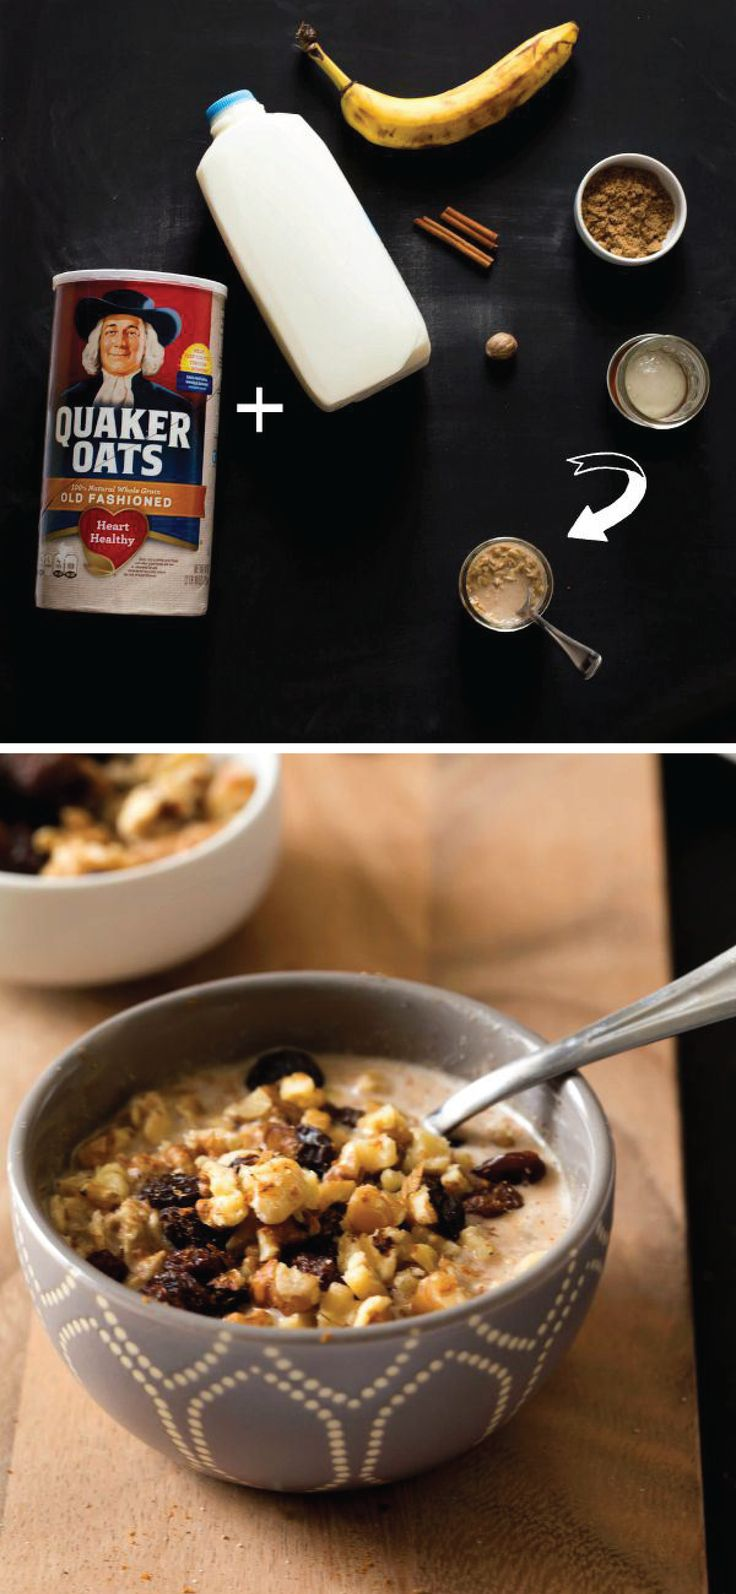 Enjoy the flavors of your favorite dessert for breakfast! This delicious Oatmeal Cookie Overnight Oats make-ahead breakfast recipe is made with Quaker® Old Fashioned Oats, banana, cinnamon, raisins, and nuts.